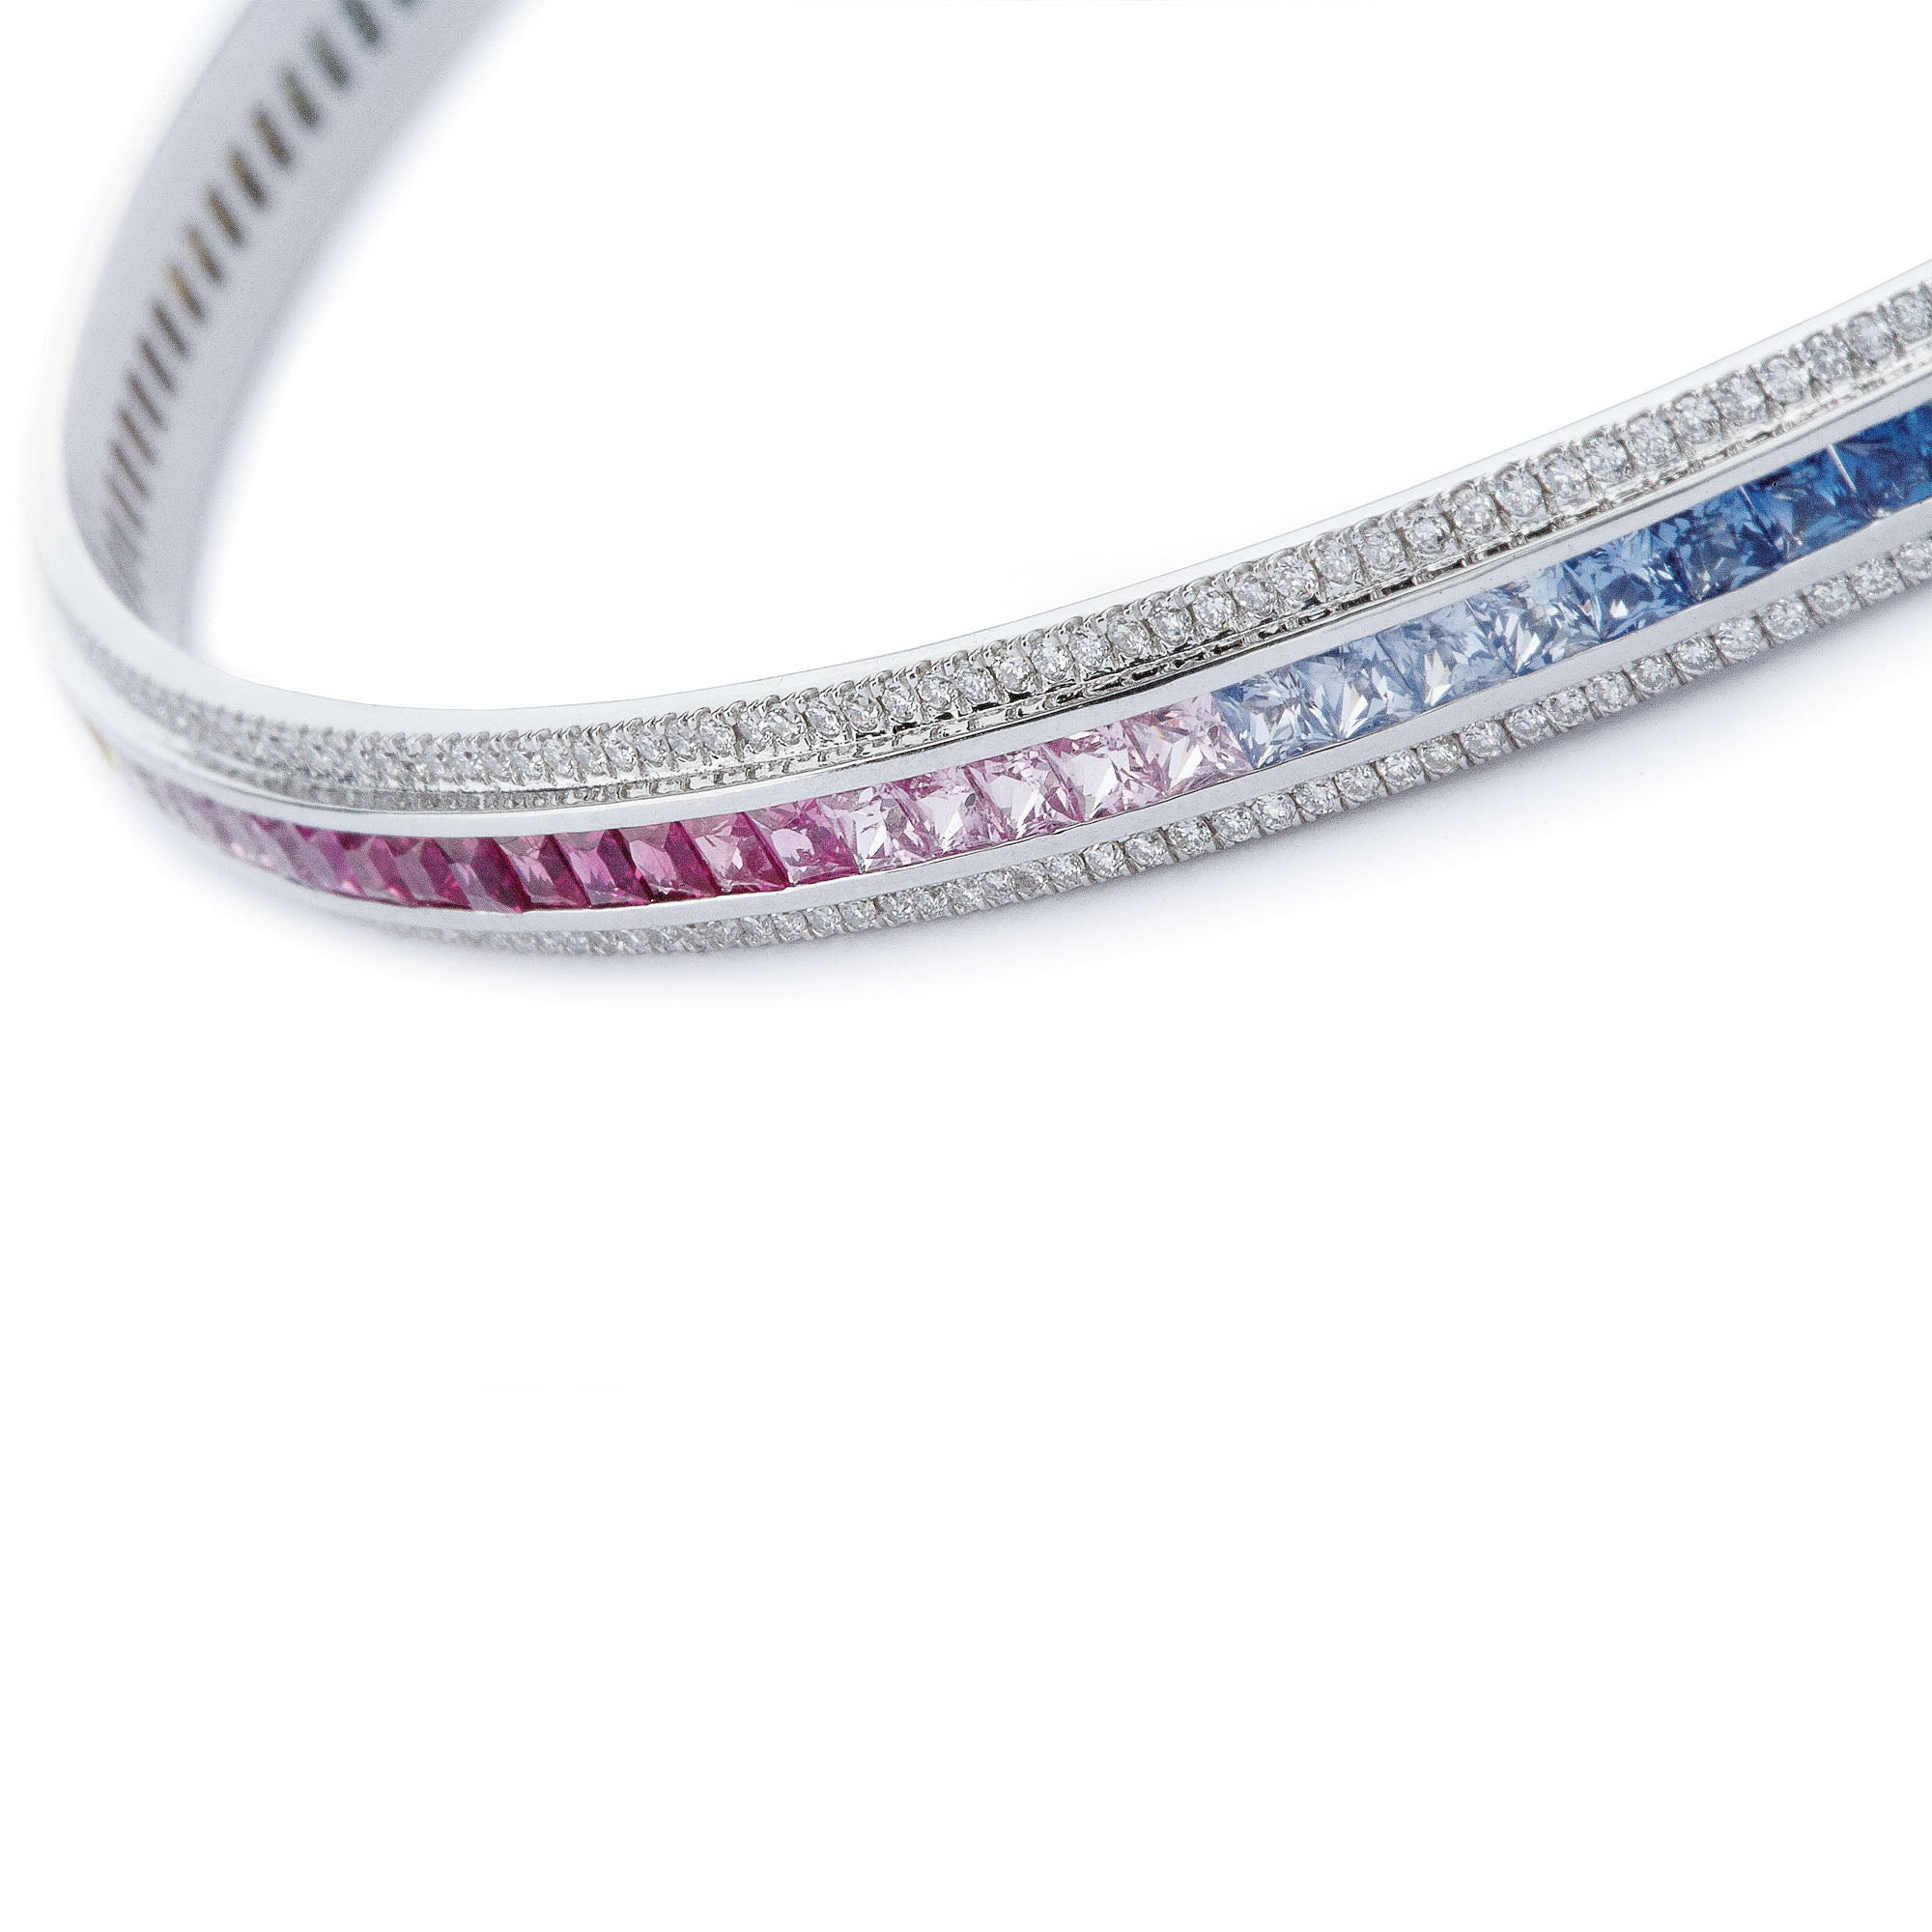 Crescent Rainbow Choker by Ele Karela for Broken English Jewelry